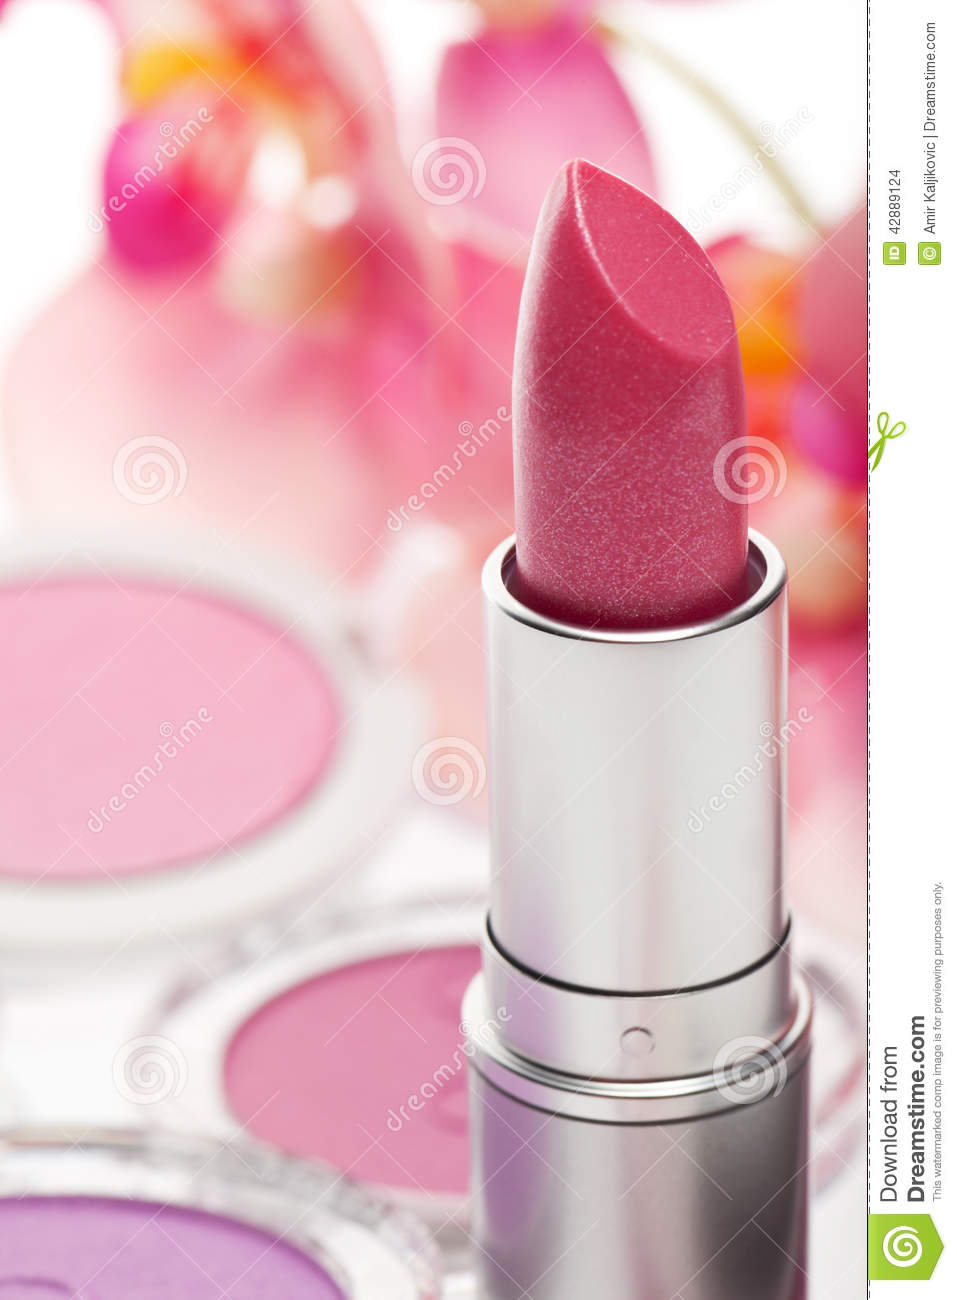 Colourful Soft Pink Lipstick Stock Photo - Image: 42889124